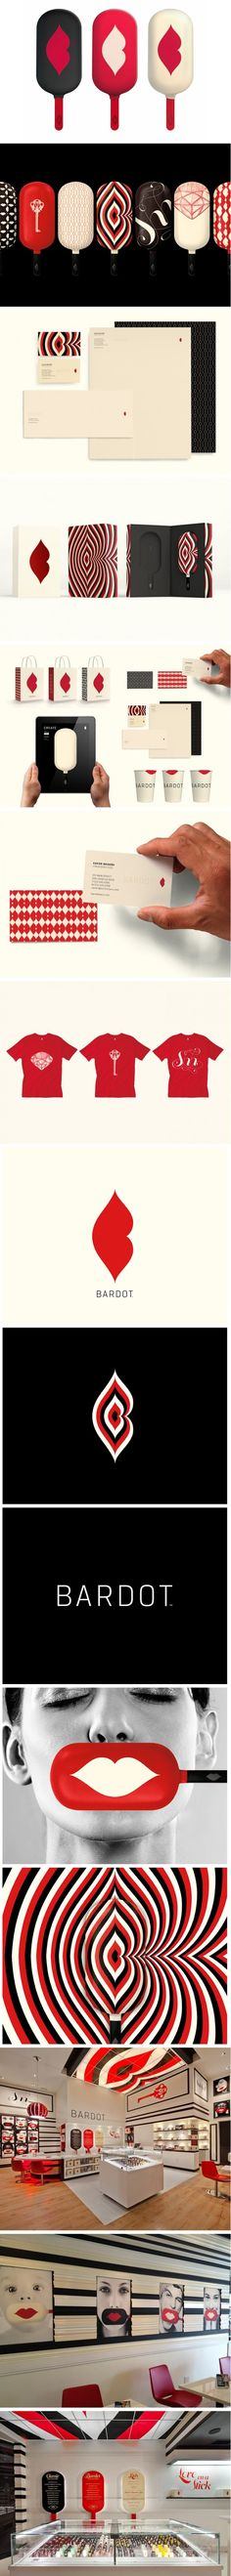 Bardot by Landor an old identity packaging branding pin that I truly love PD Logo Design, Web Design, Brand Identity Design, Graphic Design Branding, Creative Design, Corporate Design, Corporate Identity, Visual Identity, Identity Branding